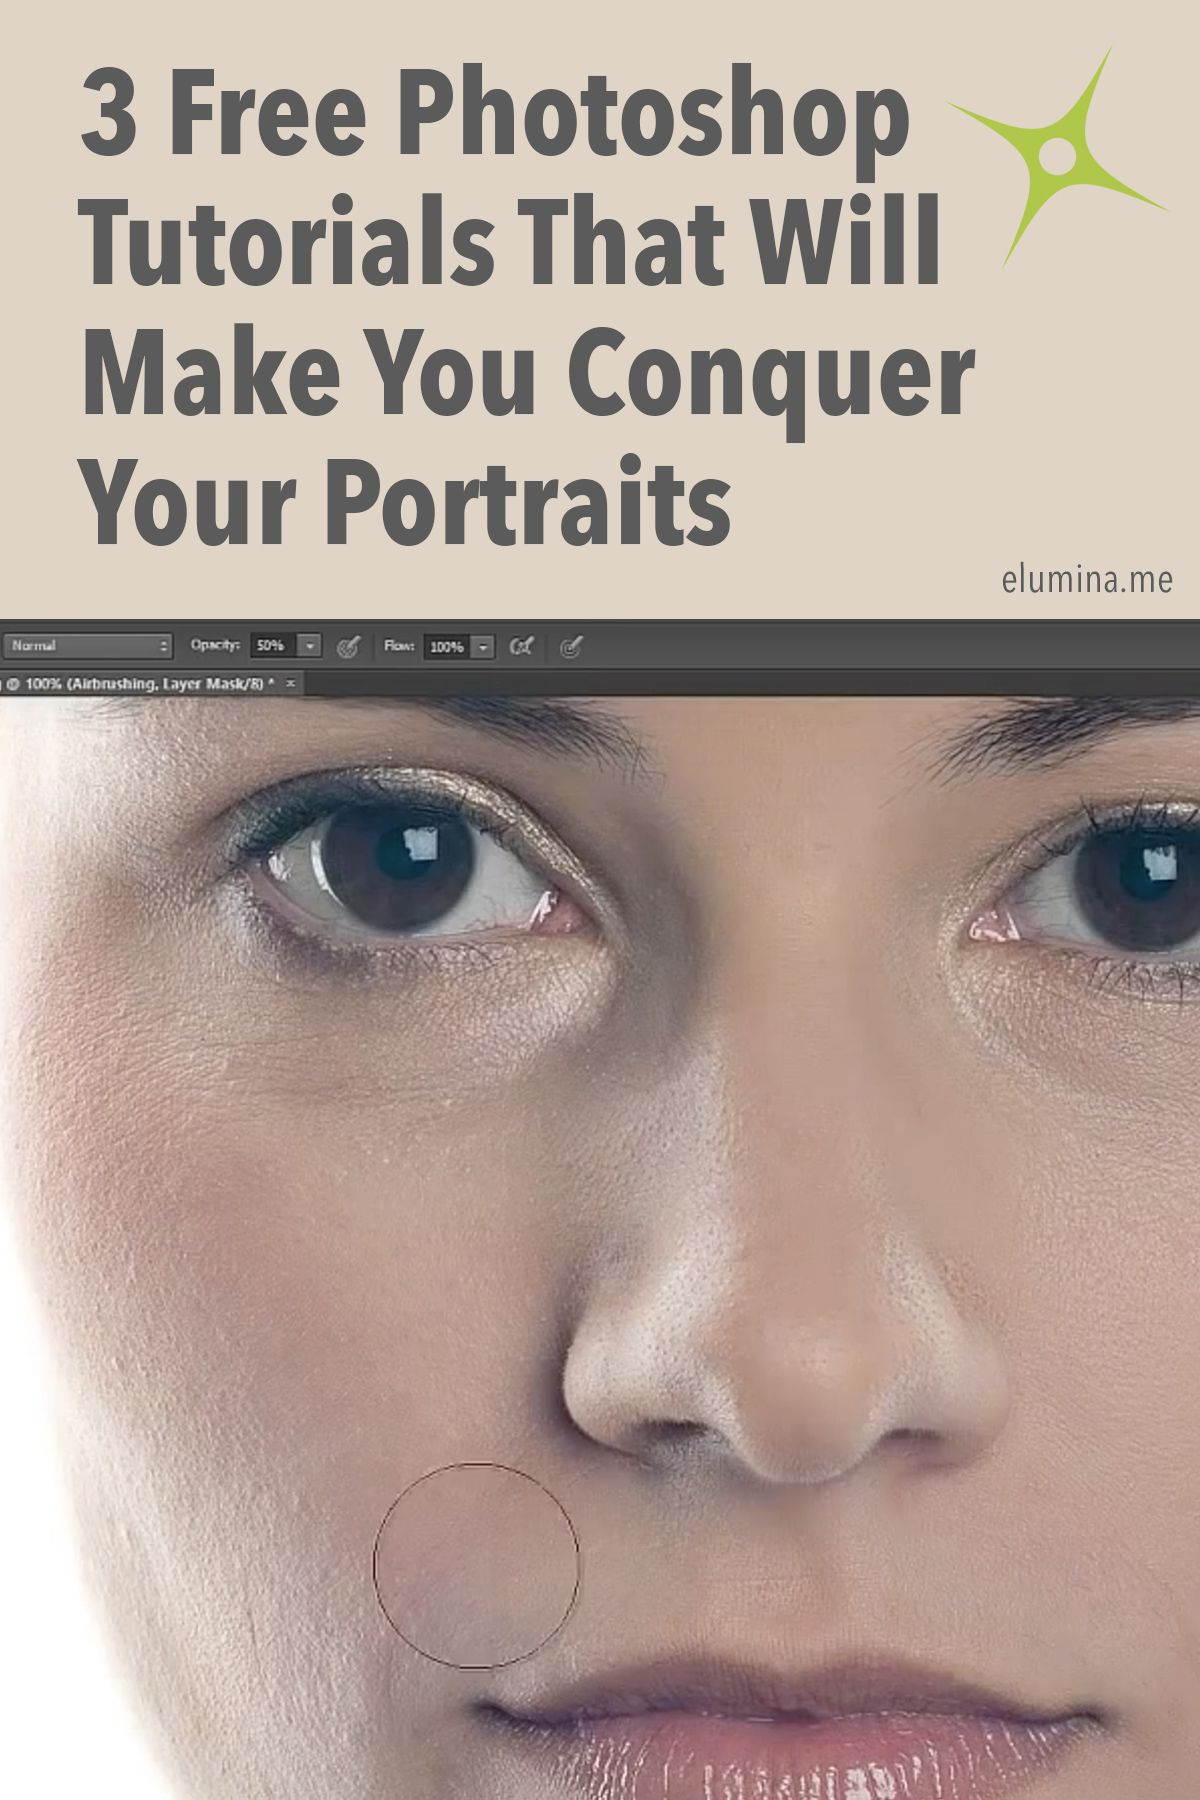 3 free photoshop tutorials that will make you conquer your these are our very favorite 3 free photoshop tutorials for portrait manipulation retouch airbrush baditri Choice Image